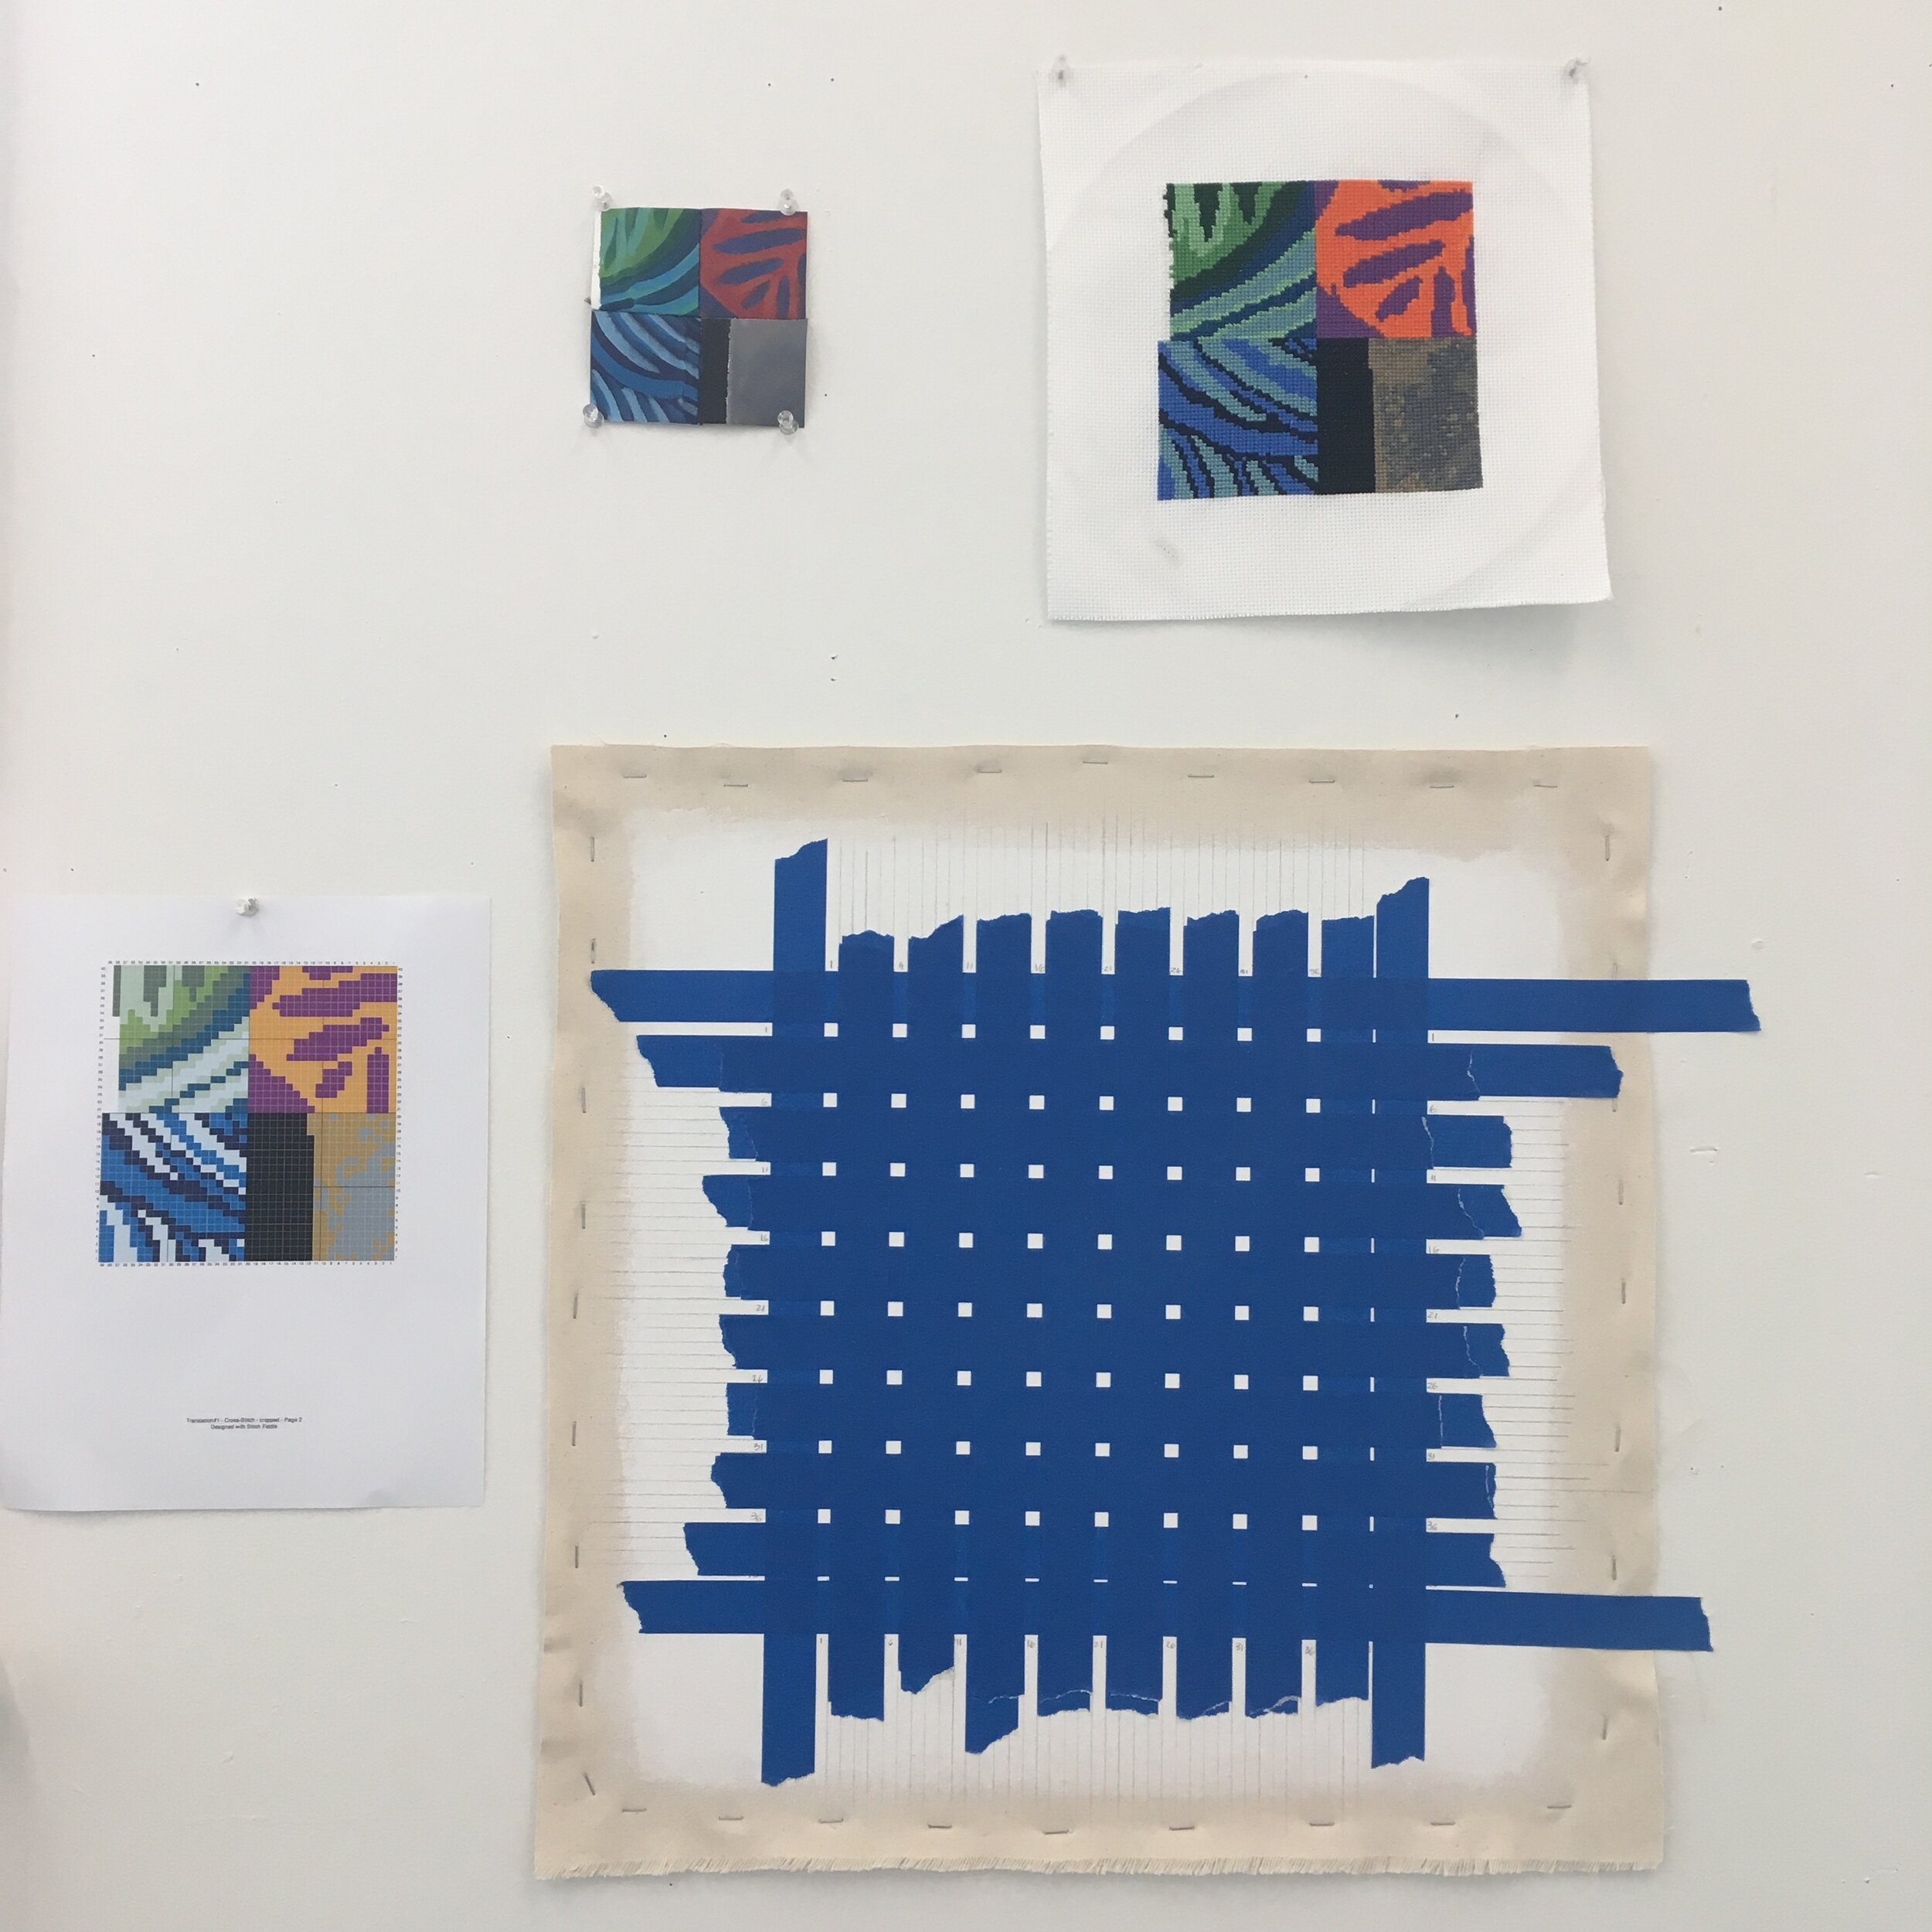 After taping off the canvas, 64 1/2 inch squares were exposed at one time. To the left of the canvas is the cross-stitch pattern I followed to do the painting.